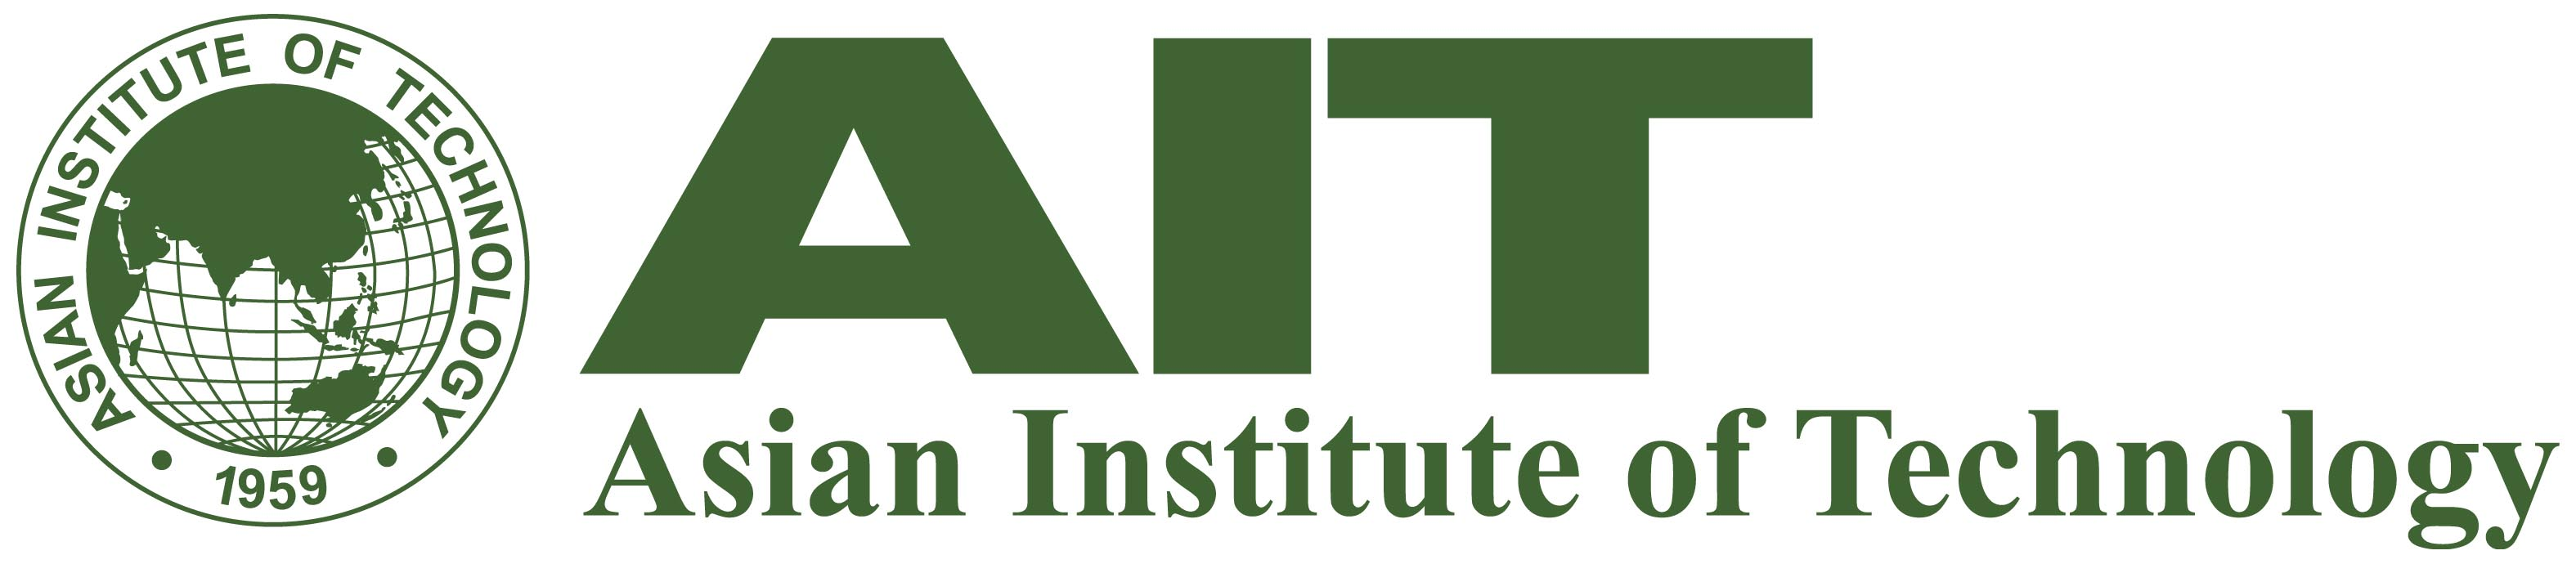 Admissions and Scholarships to Study Water Engineering and Management (WEM) Program of the Asian Institute of Technology (AIT)